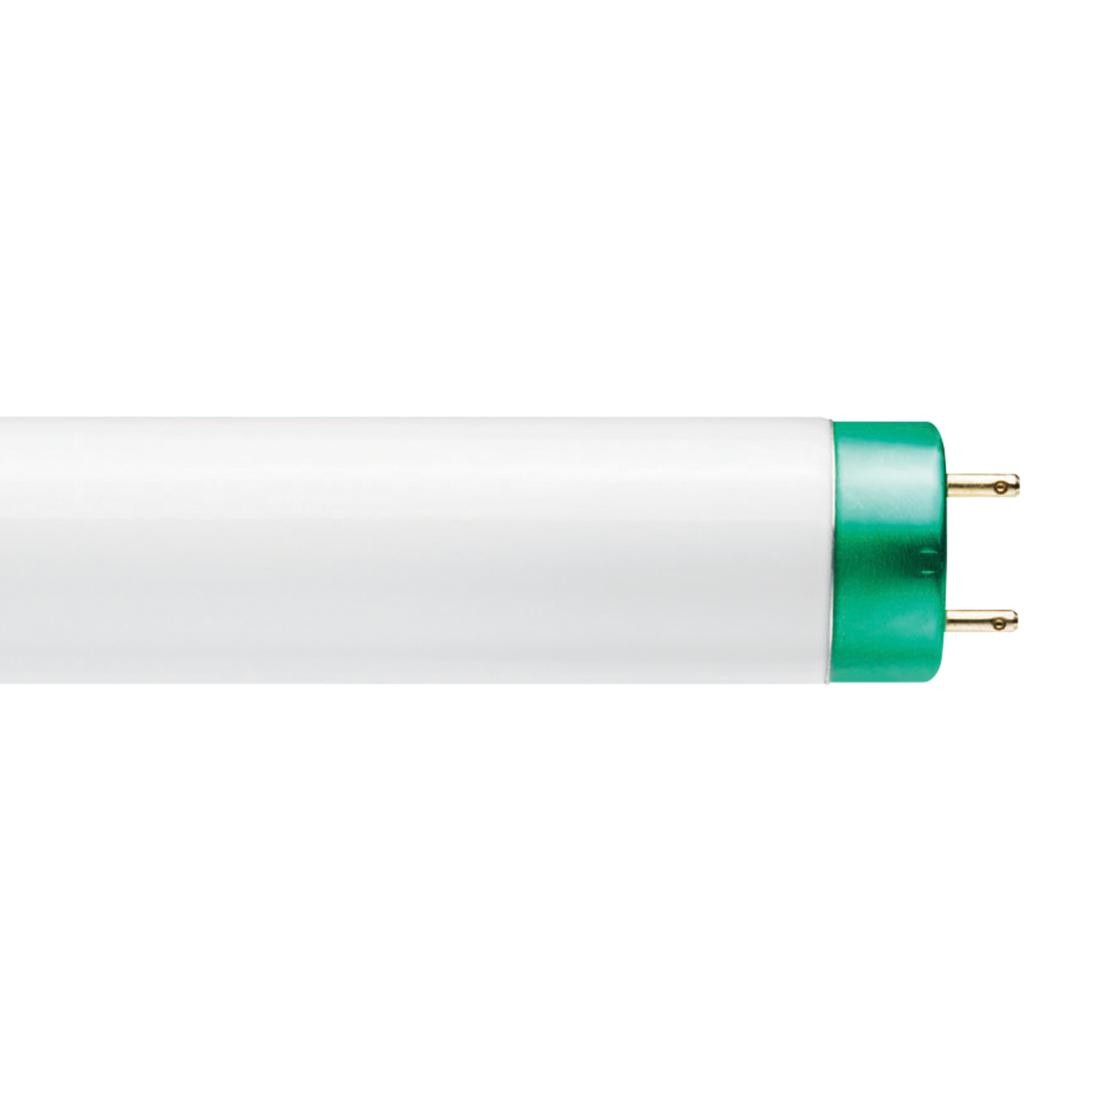 "Philips 25 Watt 48"" T8 Linear Fluorescent 4100K 85 CRI Medium Bipin (G13) Base Tube (F32T8/ADV841/XEW/ALTO25W)"